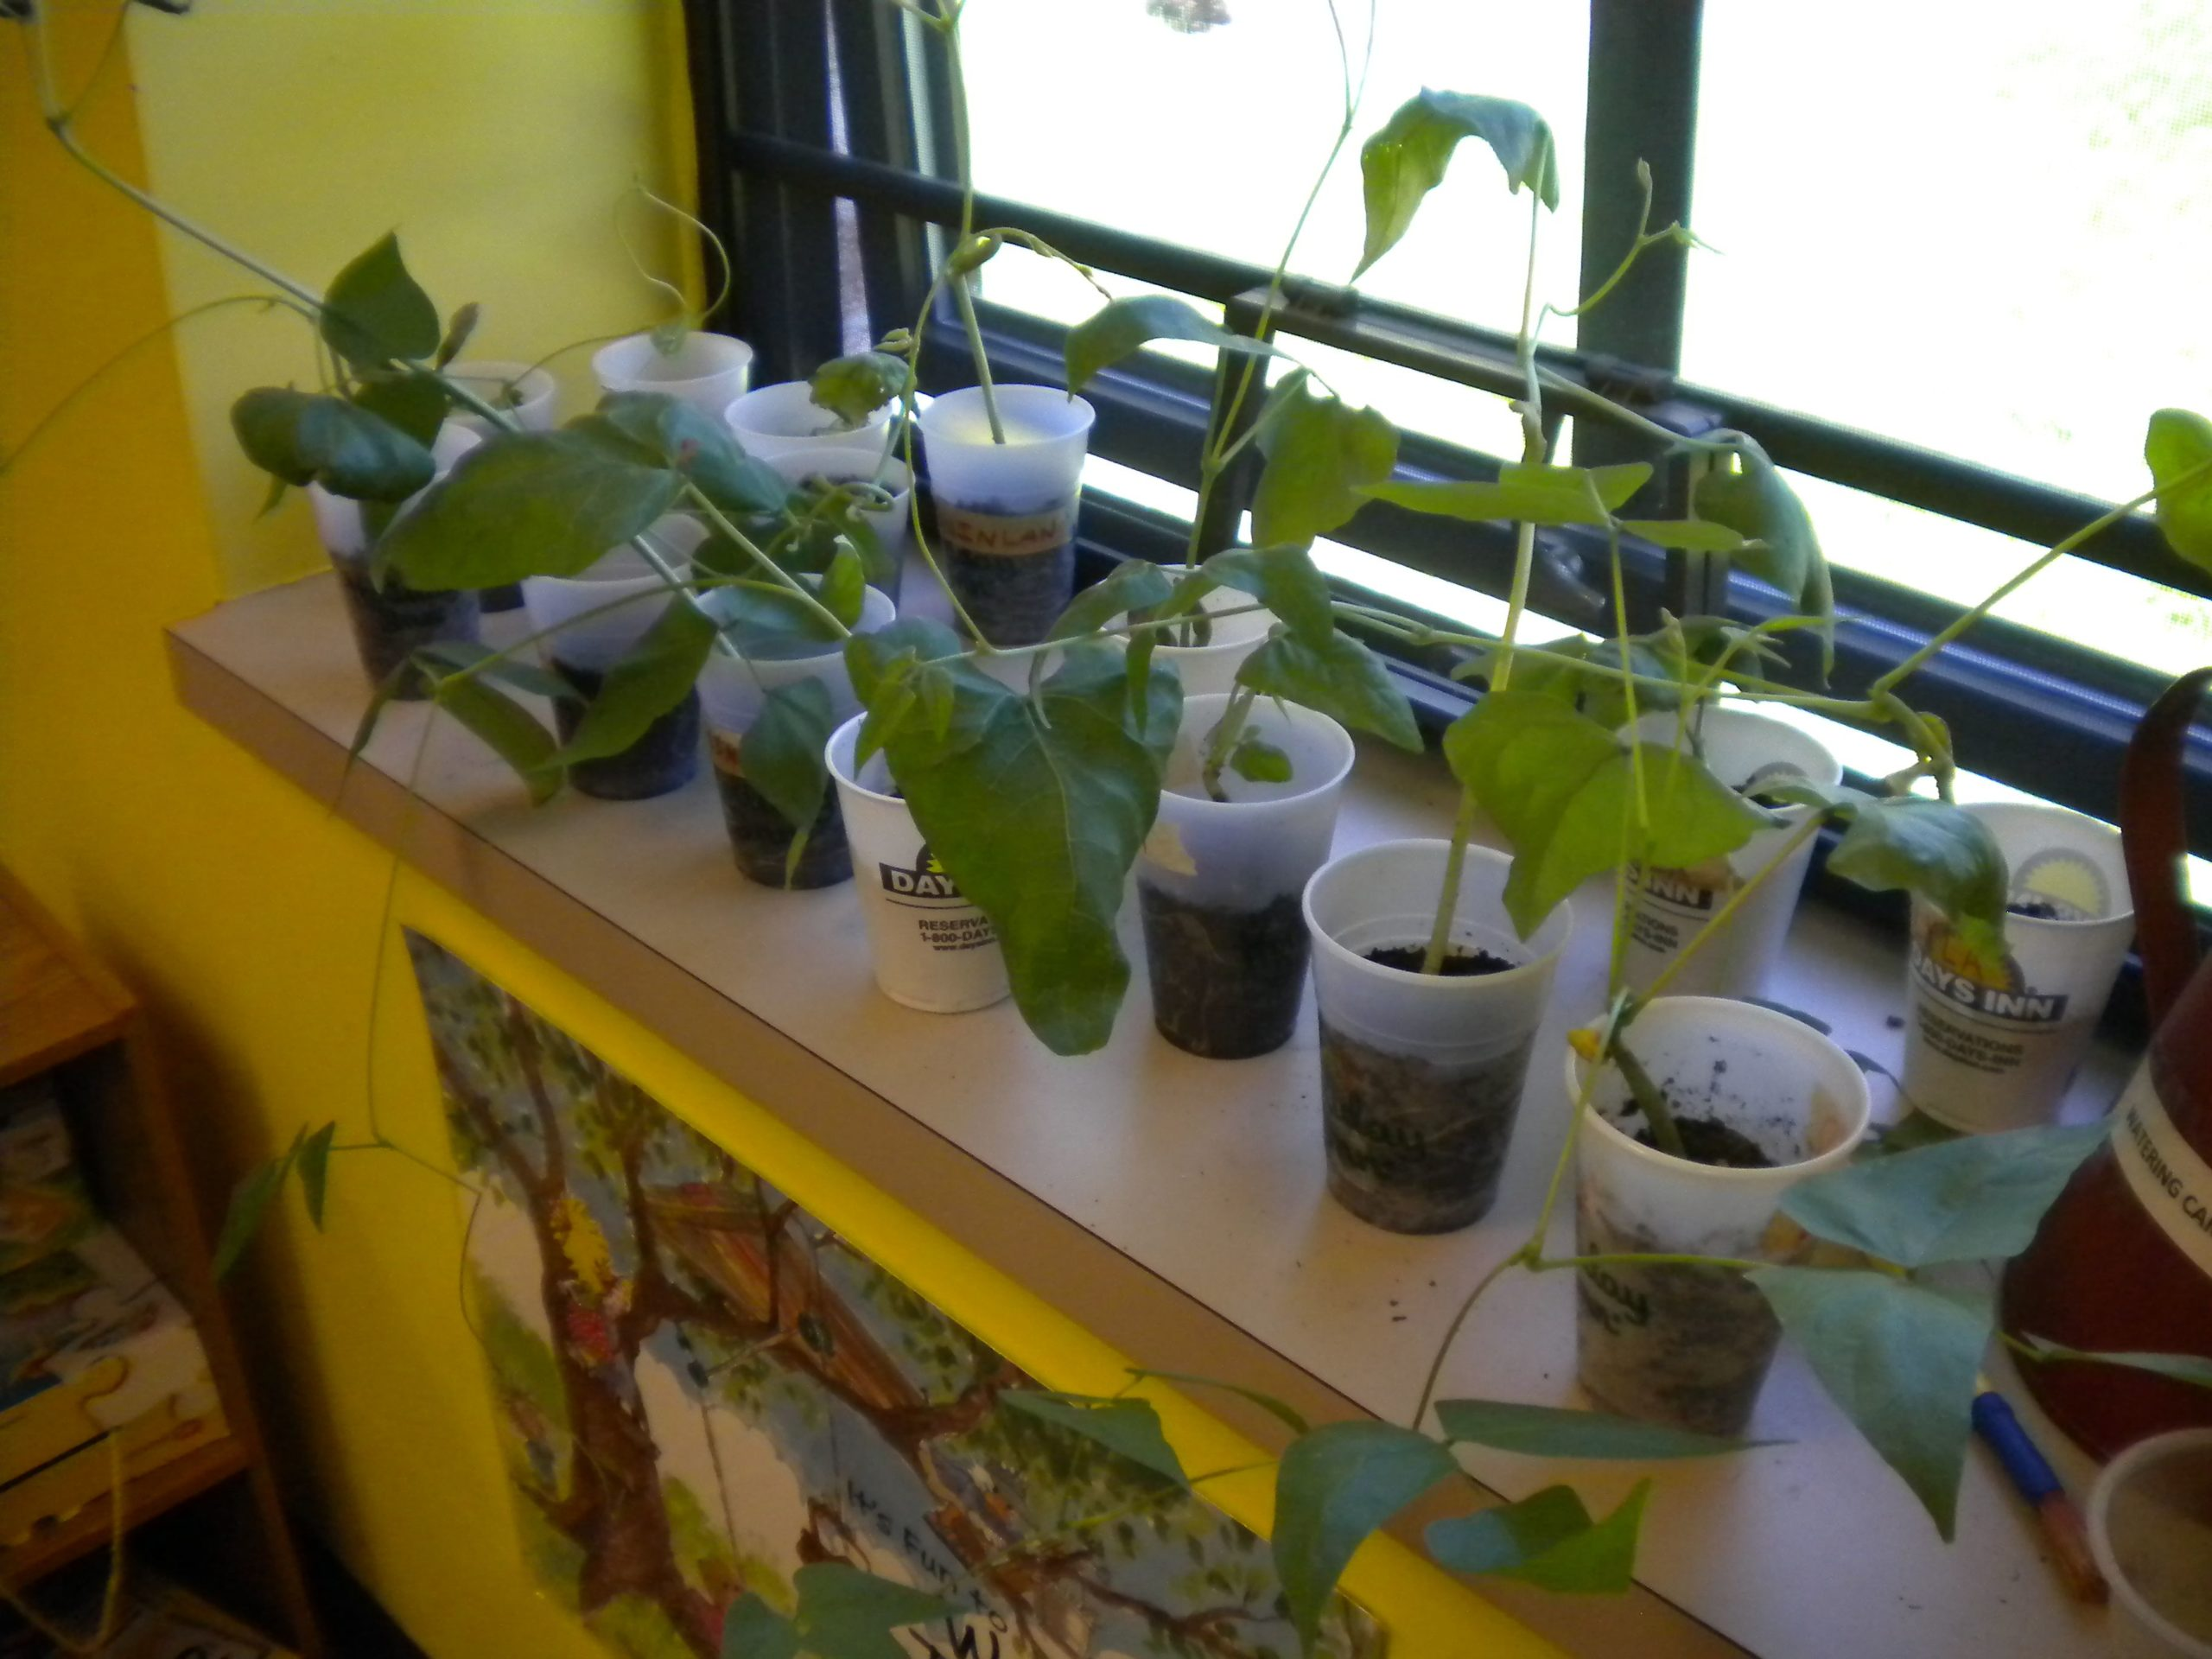 How To Grow Lima Beans In A Cup?